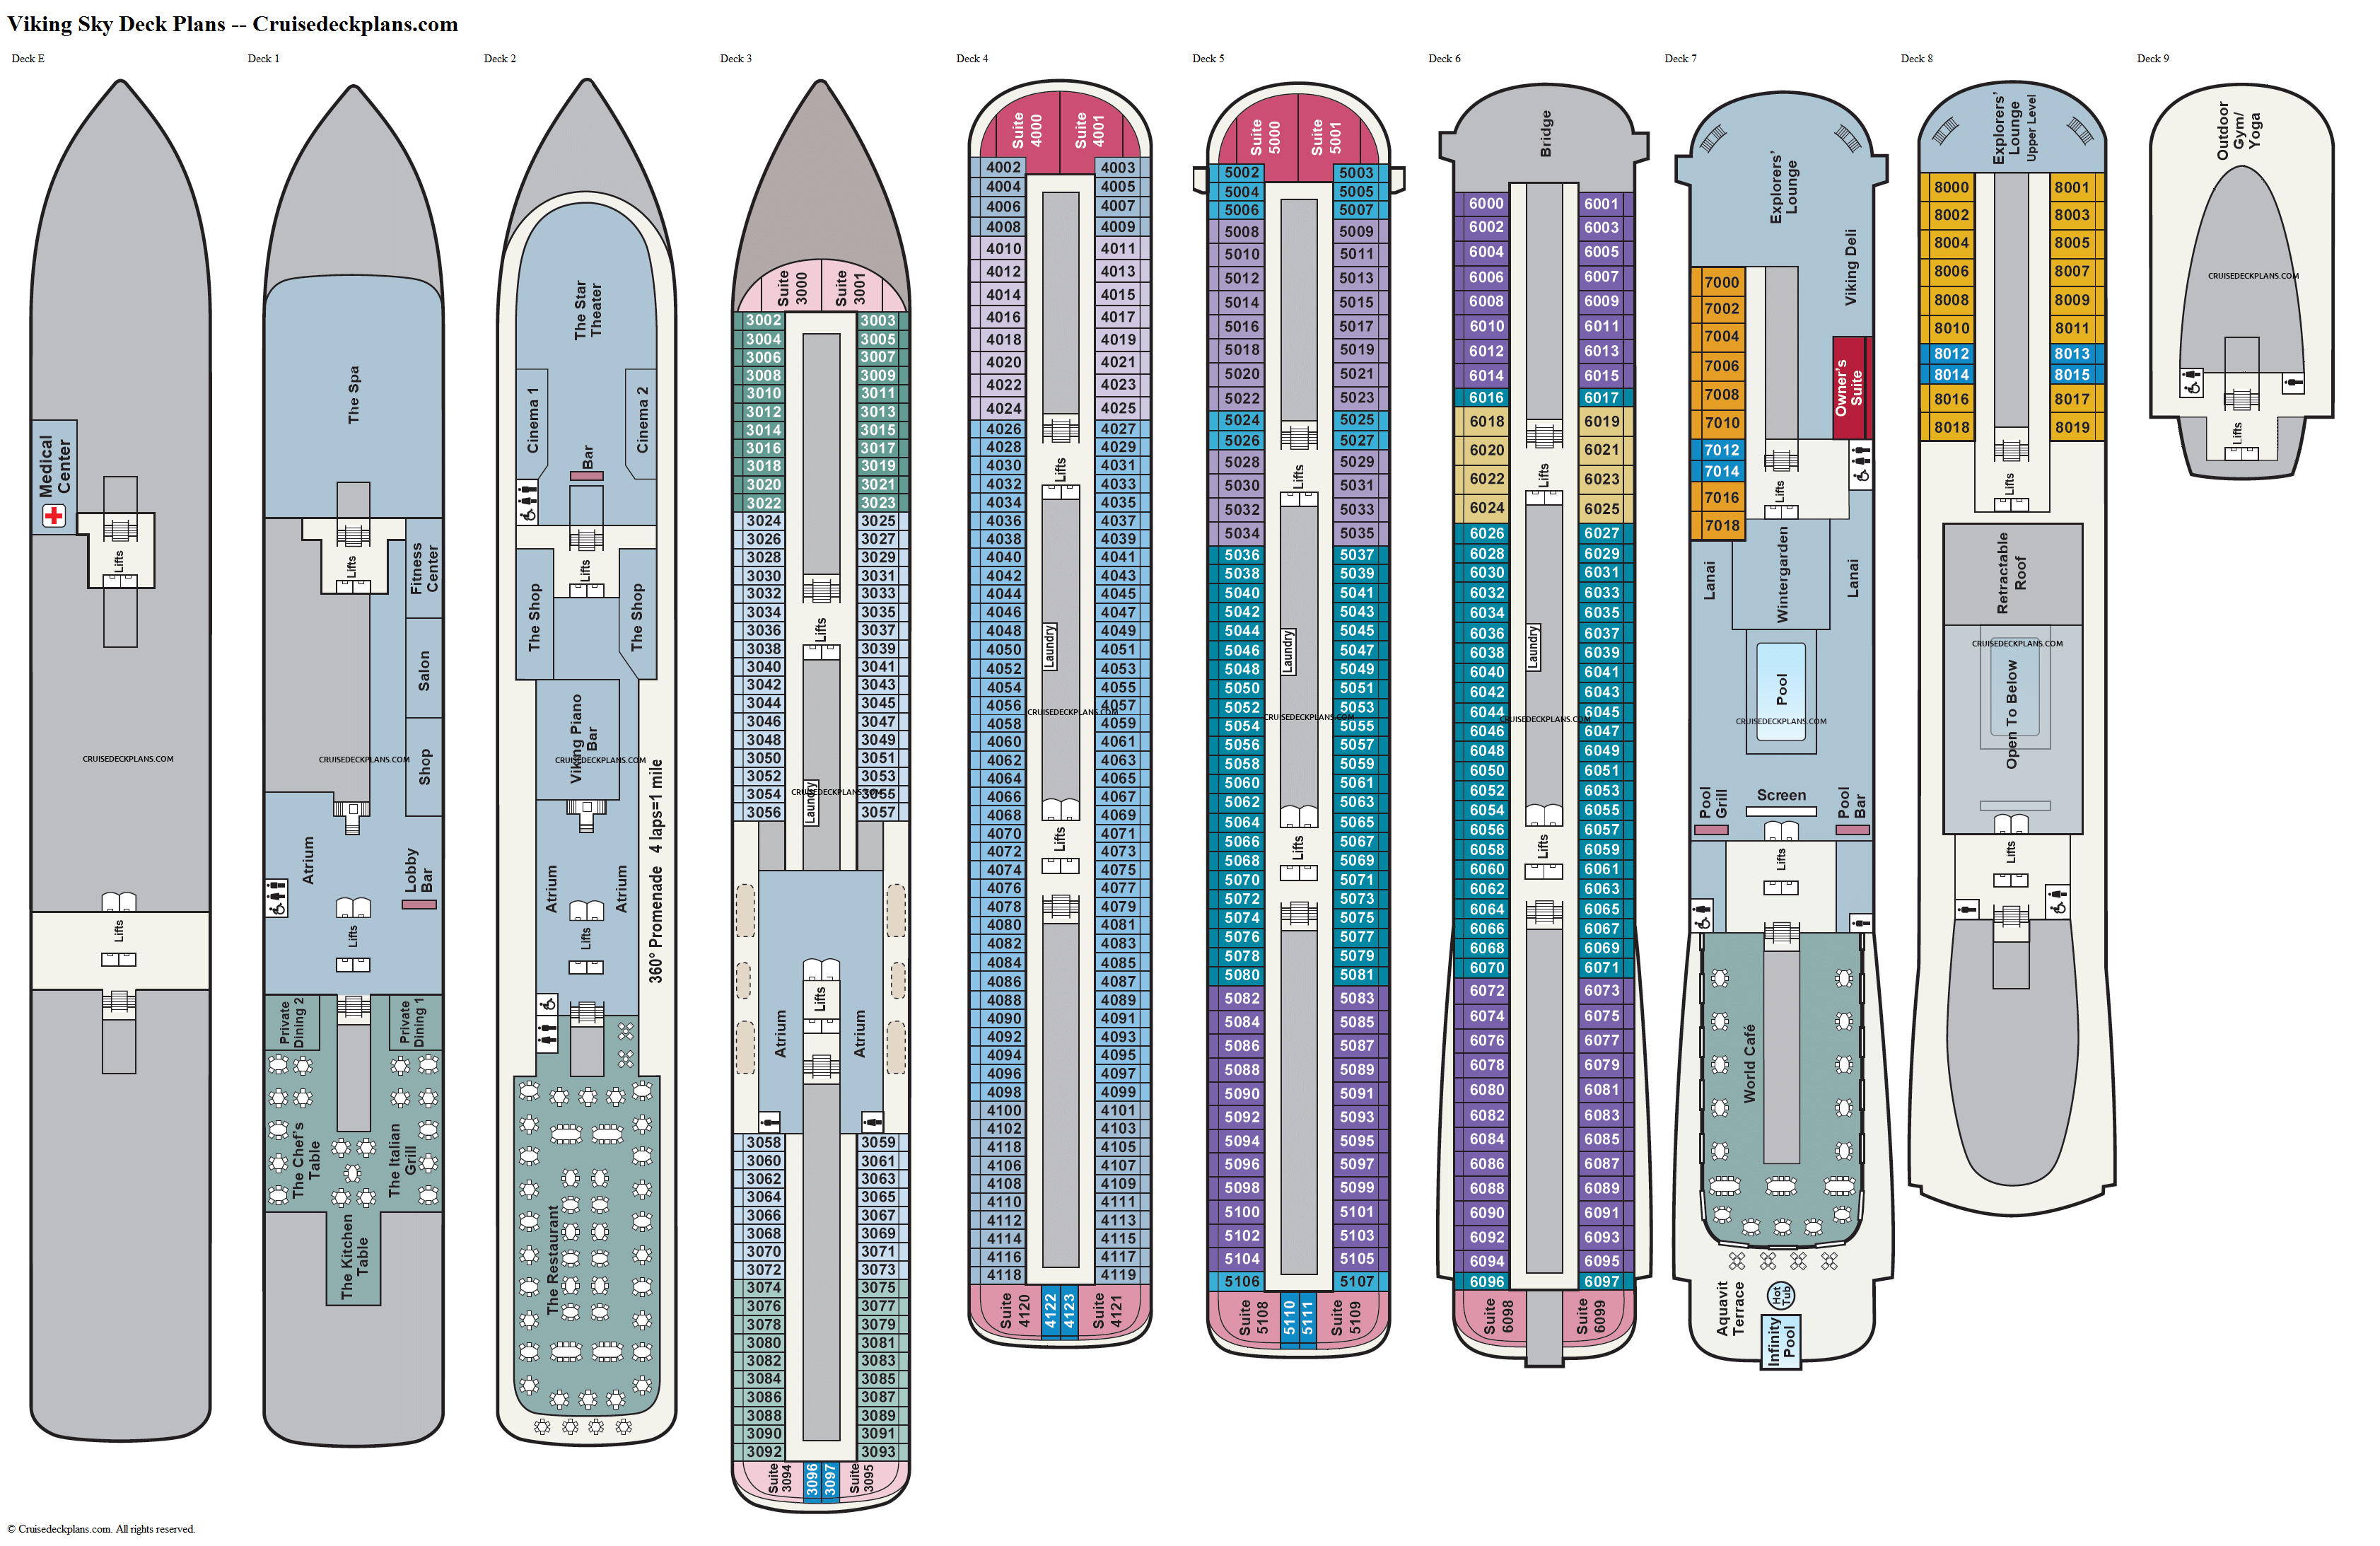 Viking Sky deck plans image